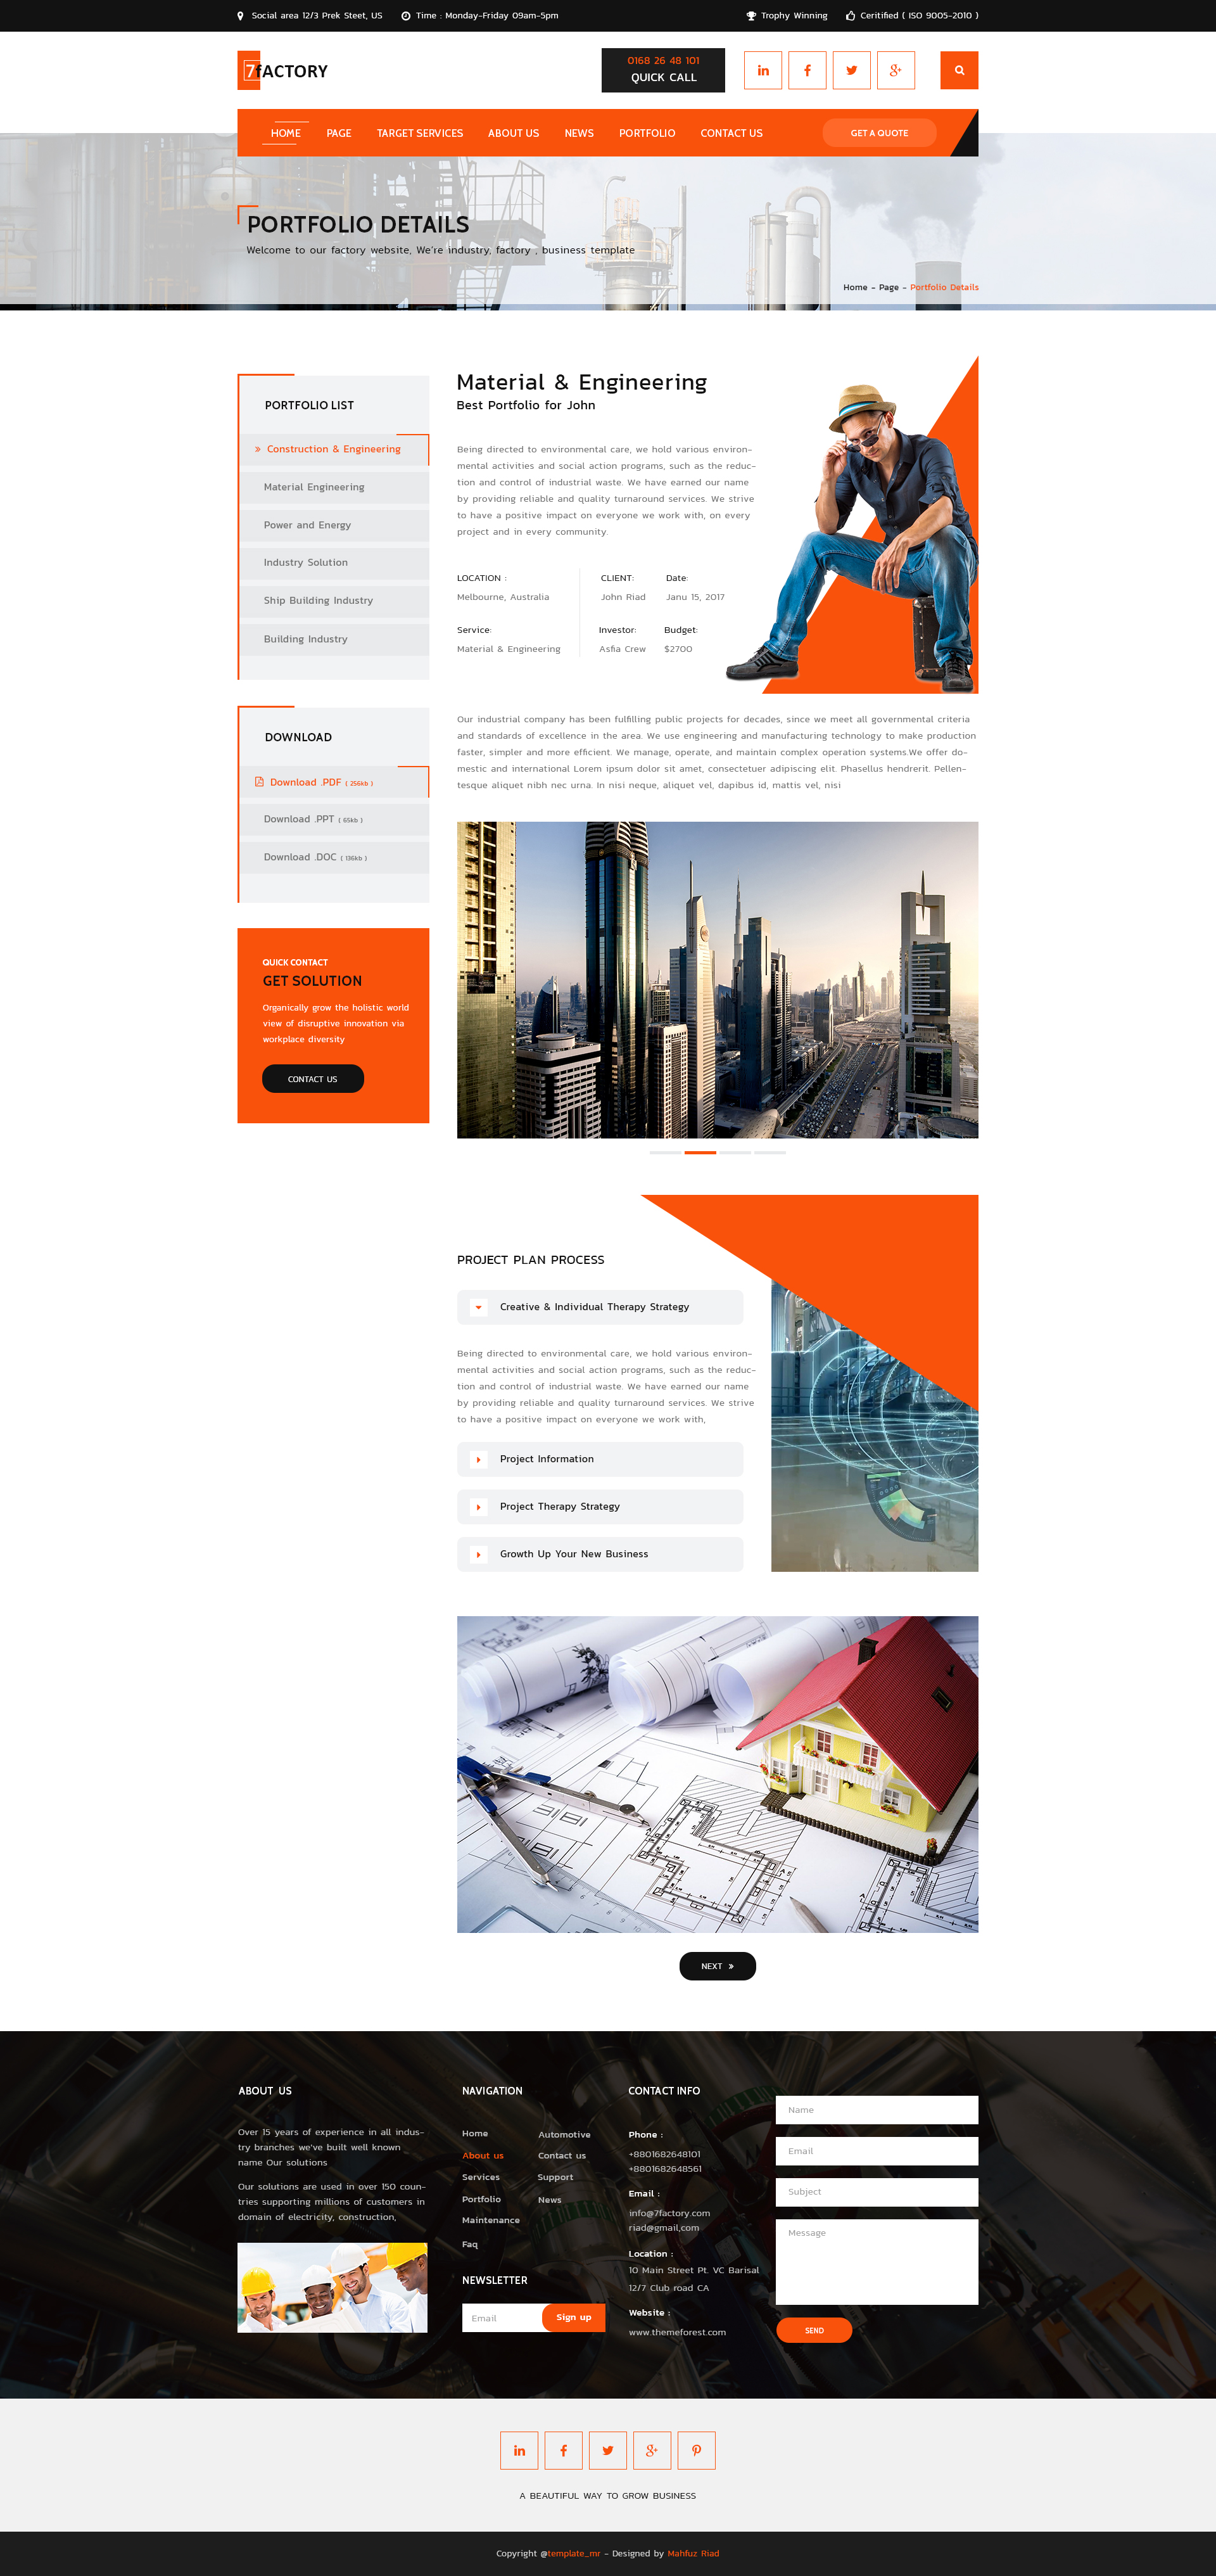 7factory Industrial Manufacturing Psd Template